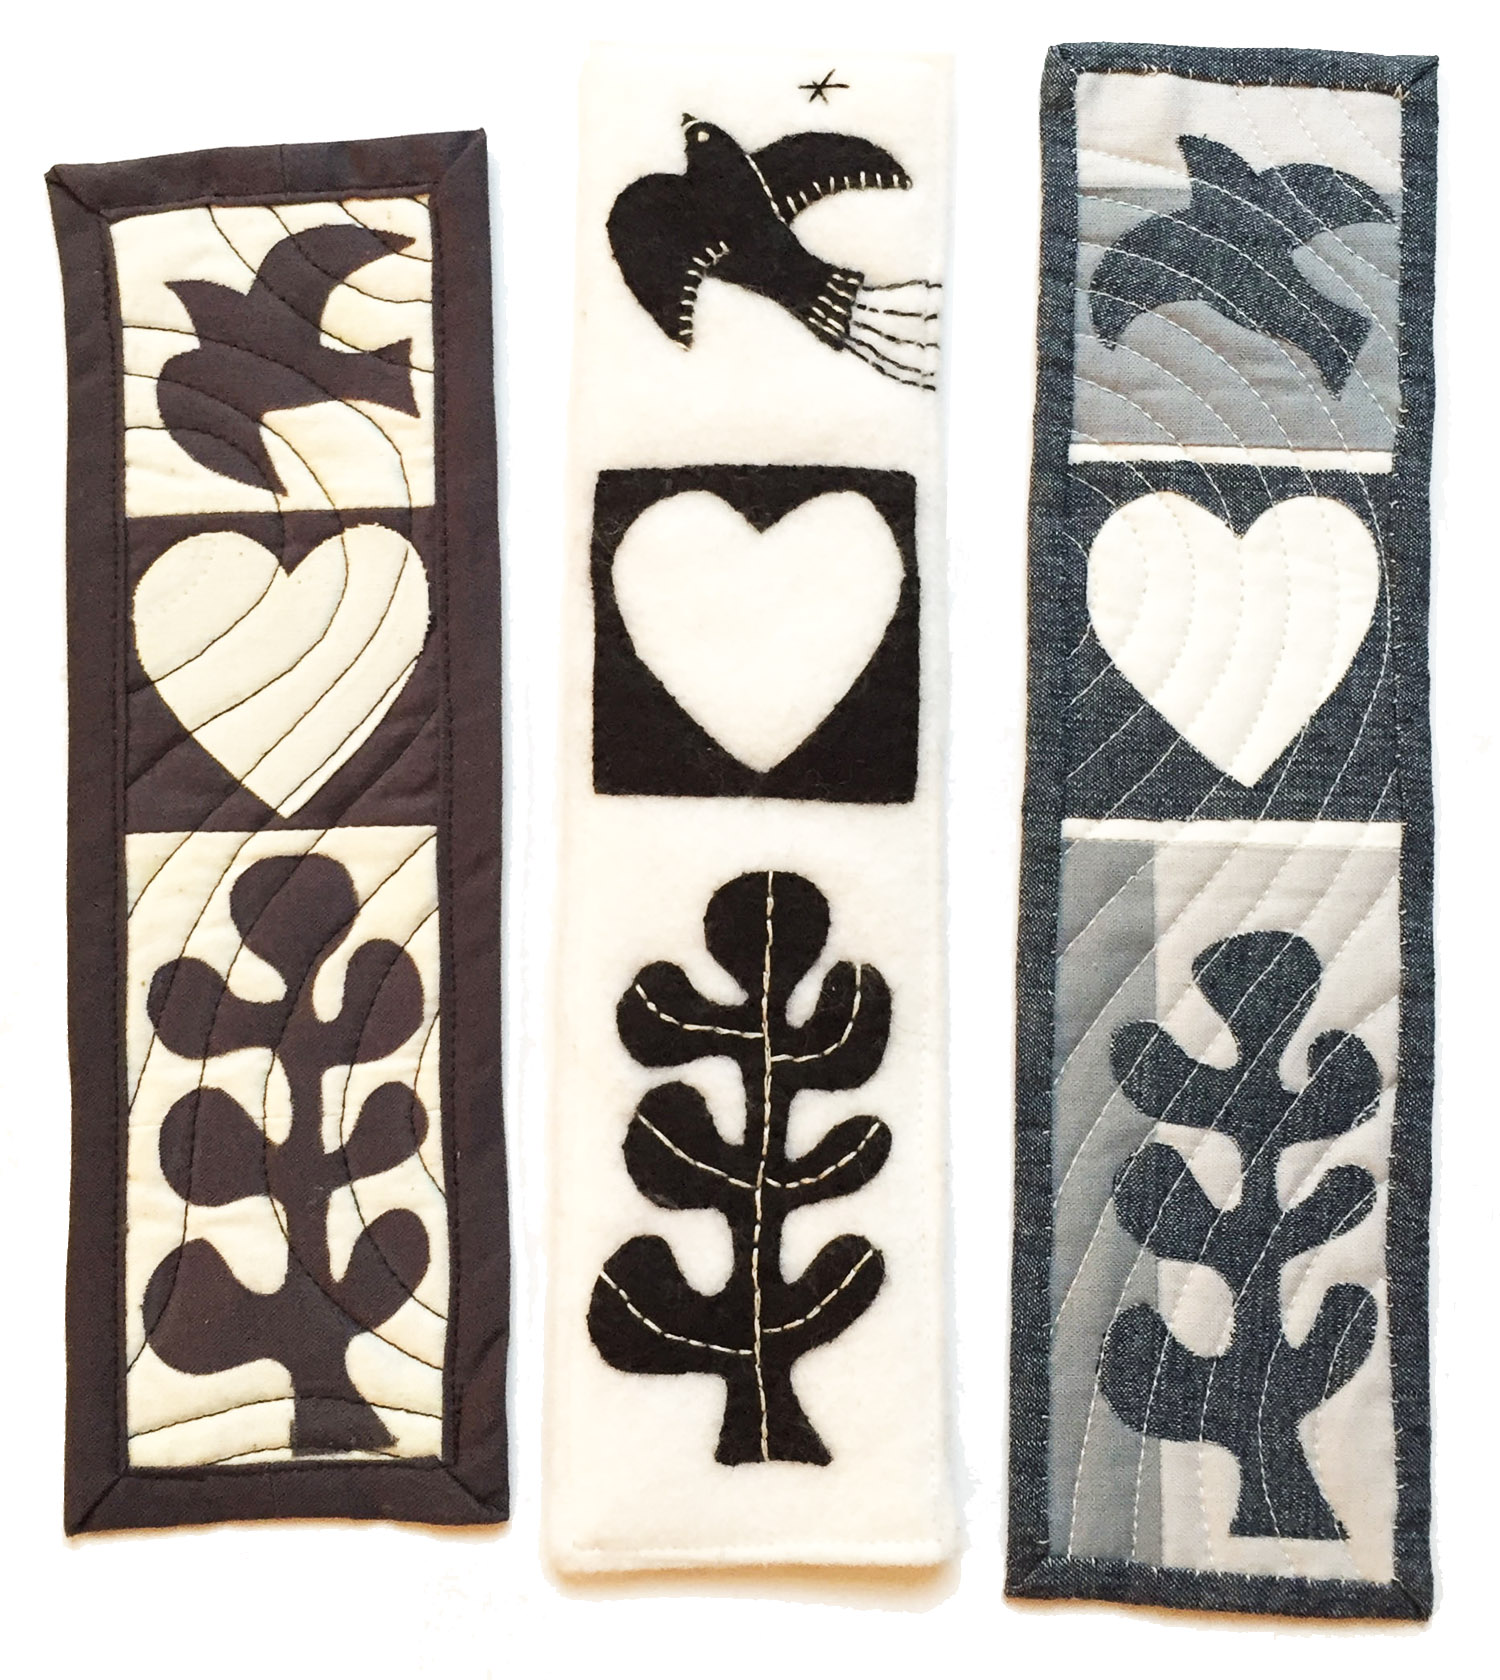 The middle bookmark is made with wool felt and embroidery. The bookmark on the right is lower in contrast due to the addition of two shades of gray.